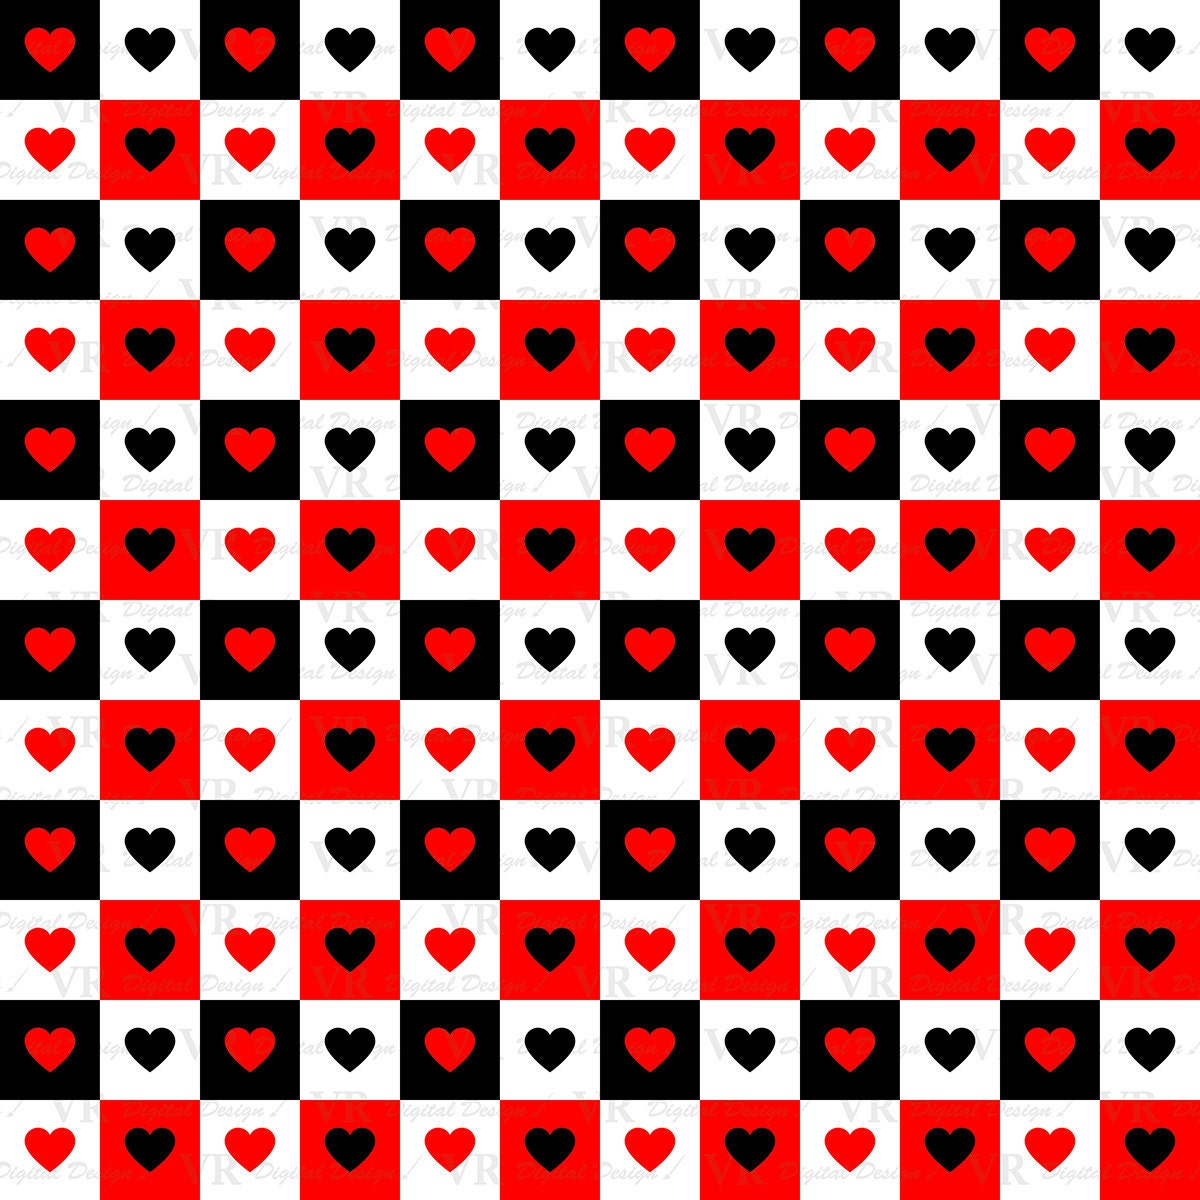 red white and black essay Leah day--quilt along (best tutorial for free motion quilting on domestic sewing machine) find this pin and more on quilts - black, white, red, beige by colleen butler free motion quilting.